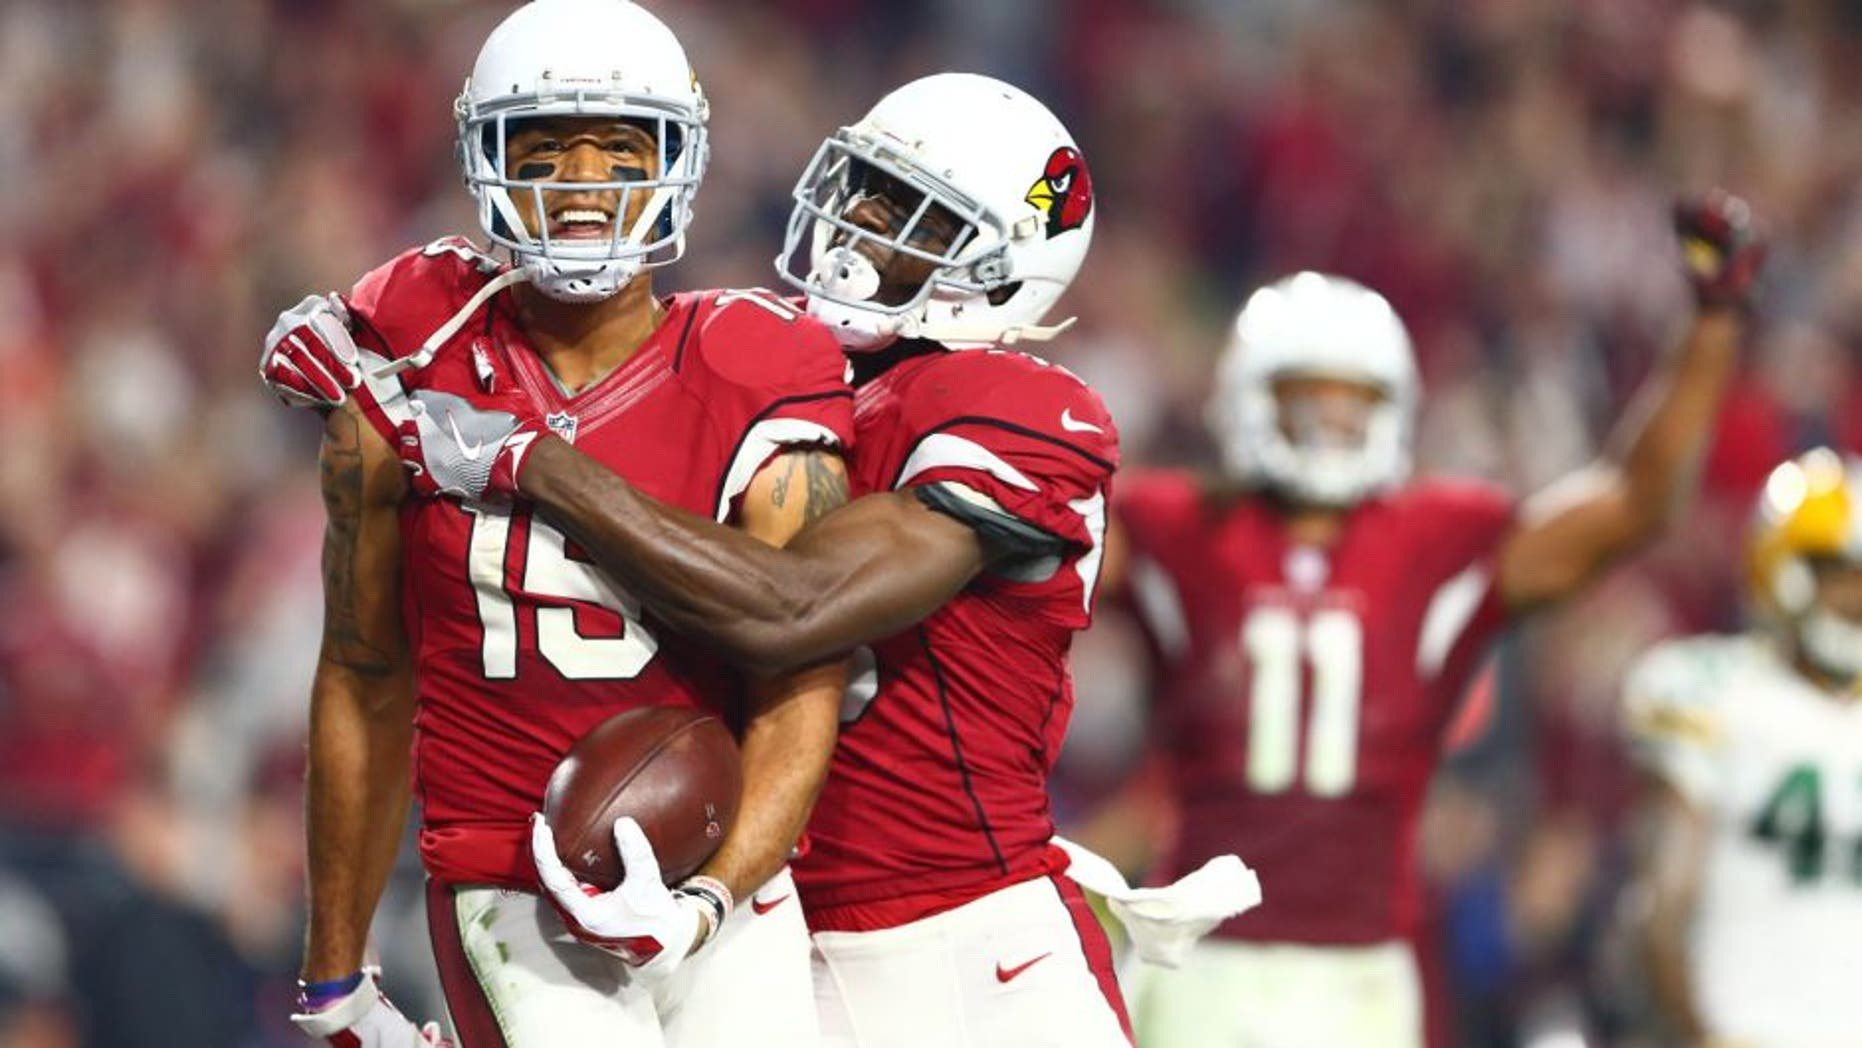 Jan 16, 2016; Glendale, AZ, USA; Arizona Cardinals wide receiver Michael Floyd (15) celebrates with wide receiver Jaron Brown (13) after catching a pass for a touchdown against the Green Bay Packers during the fourth quarter in a NFC Divisional round playoff game at University of Phoenix Stadium. Mandatory Credit: Mark J. Rebilas-USA TODAY Sports